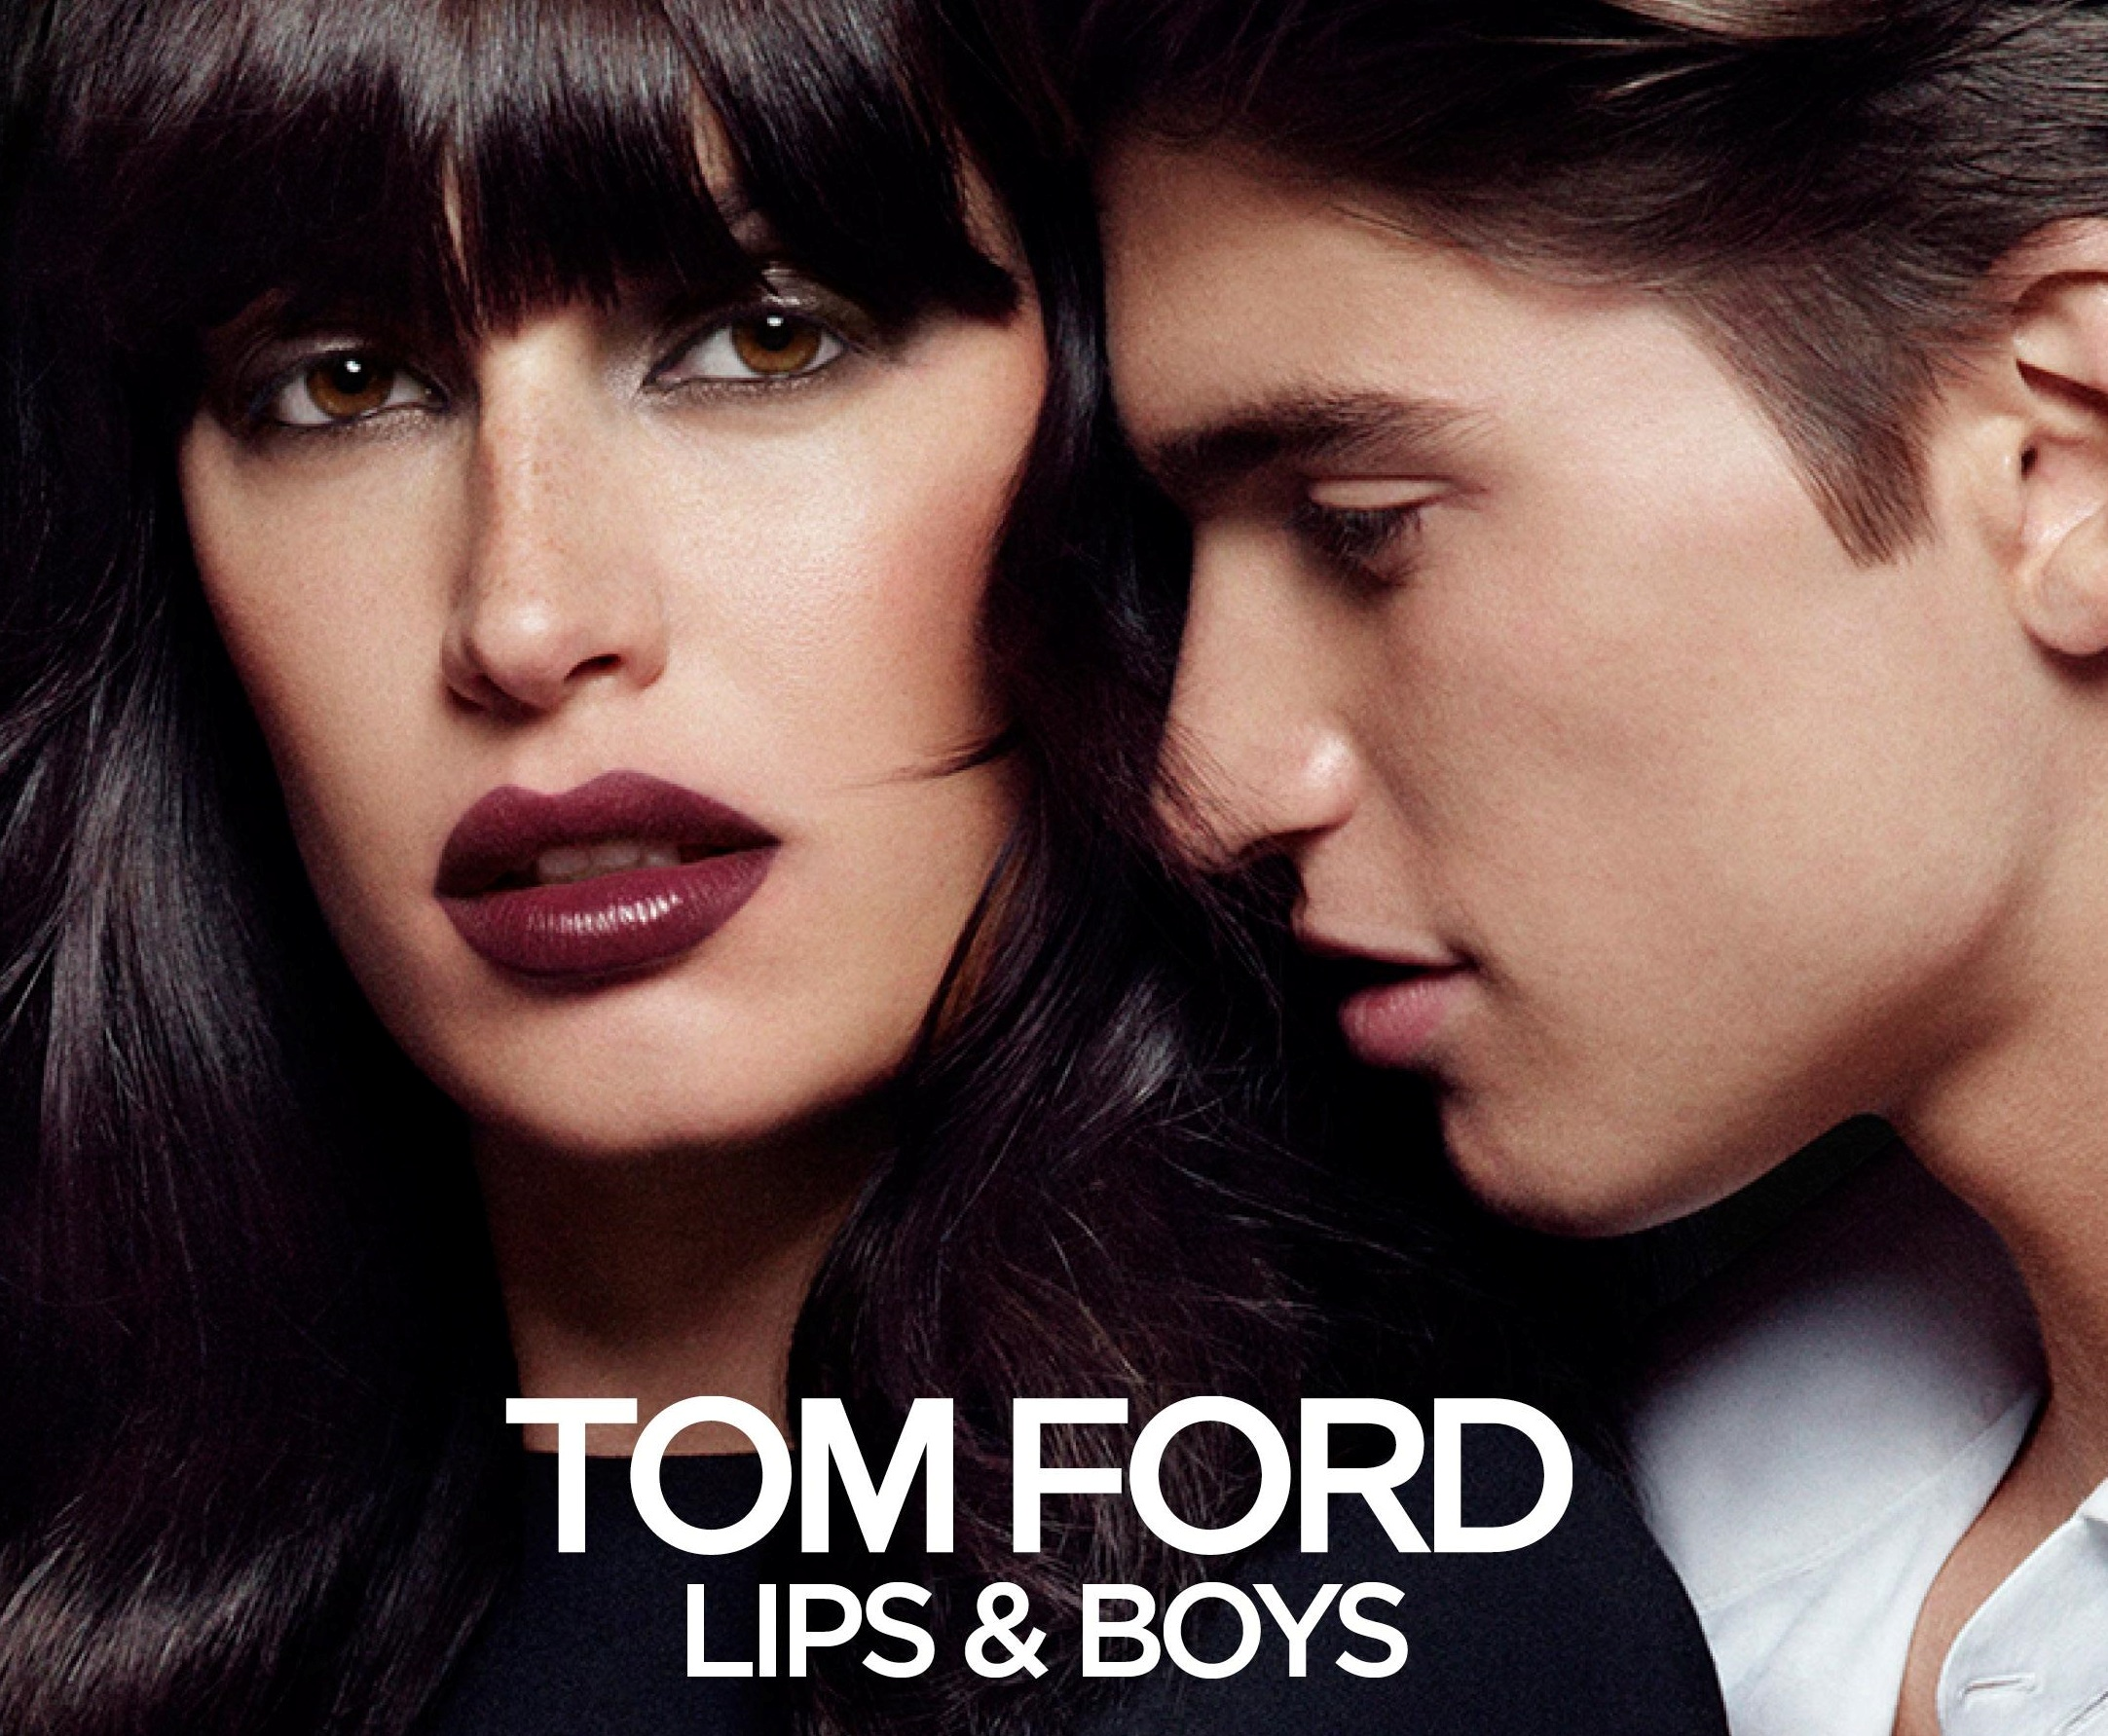 Tom Ford Lips & Boys Welcomes 25 New Boys